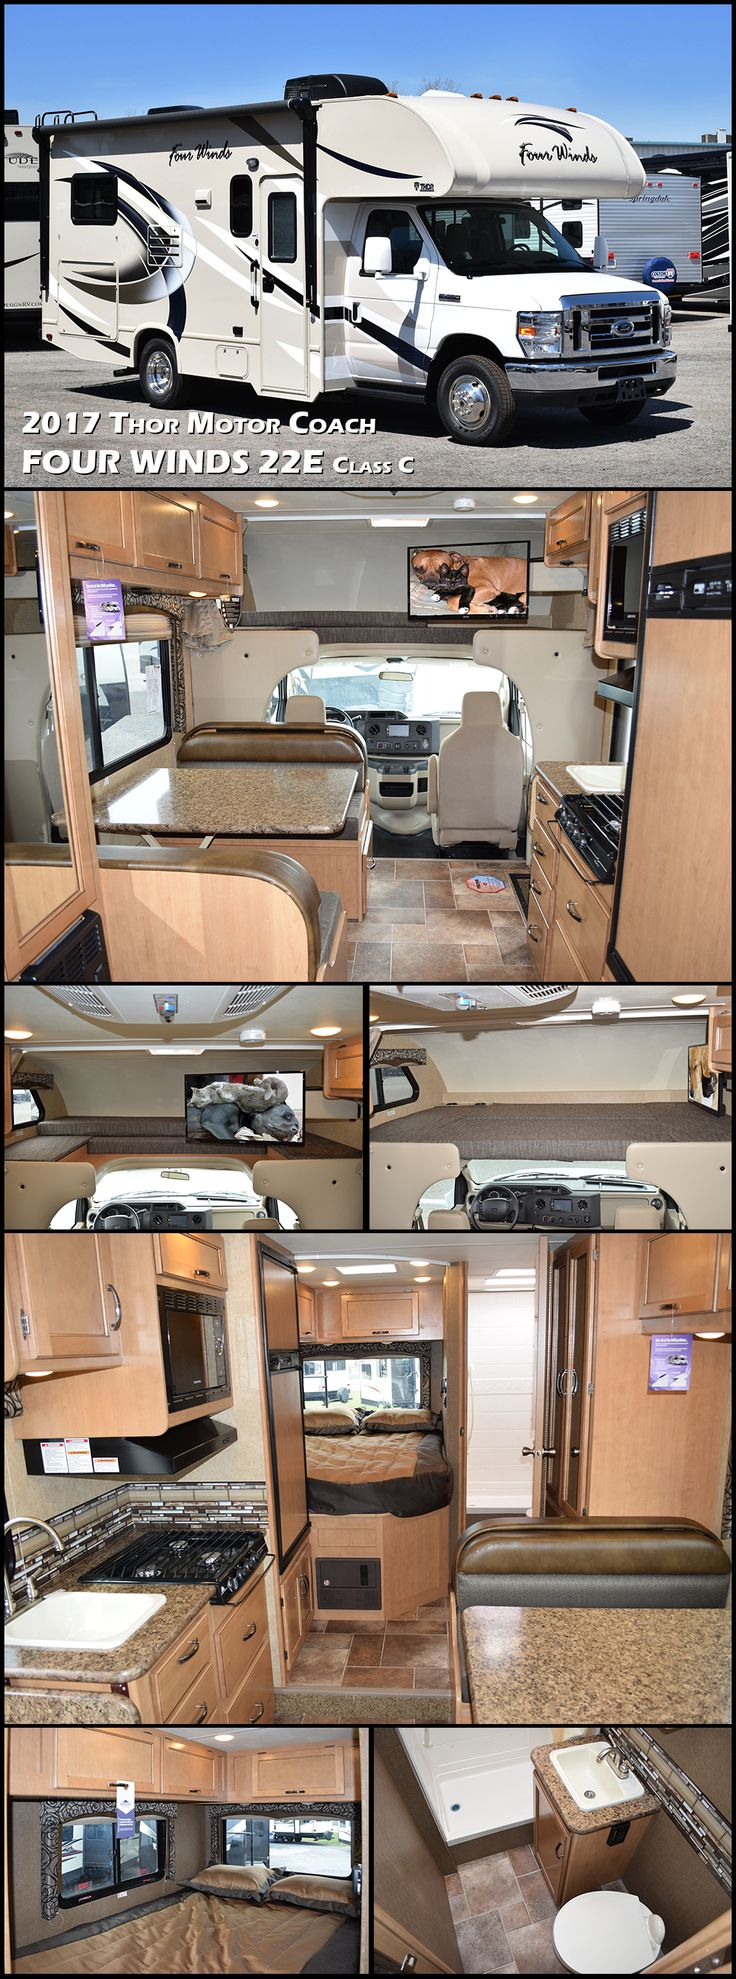 Small class c rv models quotes - Small Class C Rv Models Quotes Let The Adventures Begin In This Four Winds 22e Download